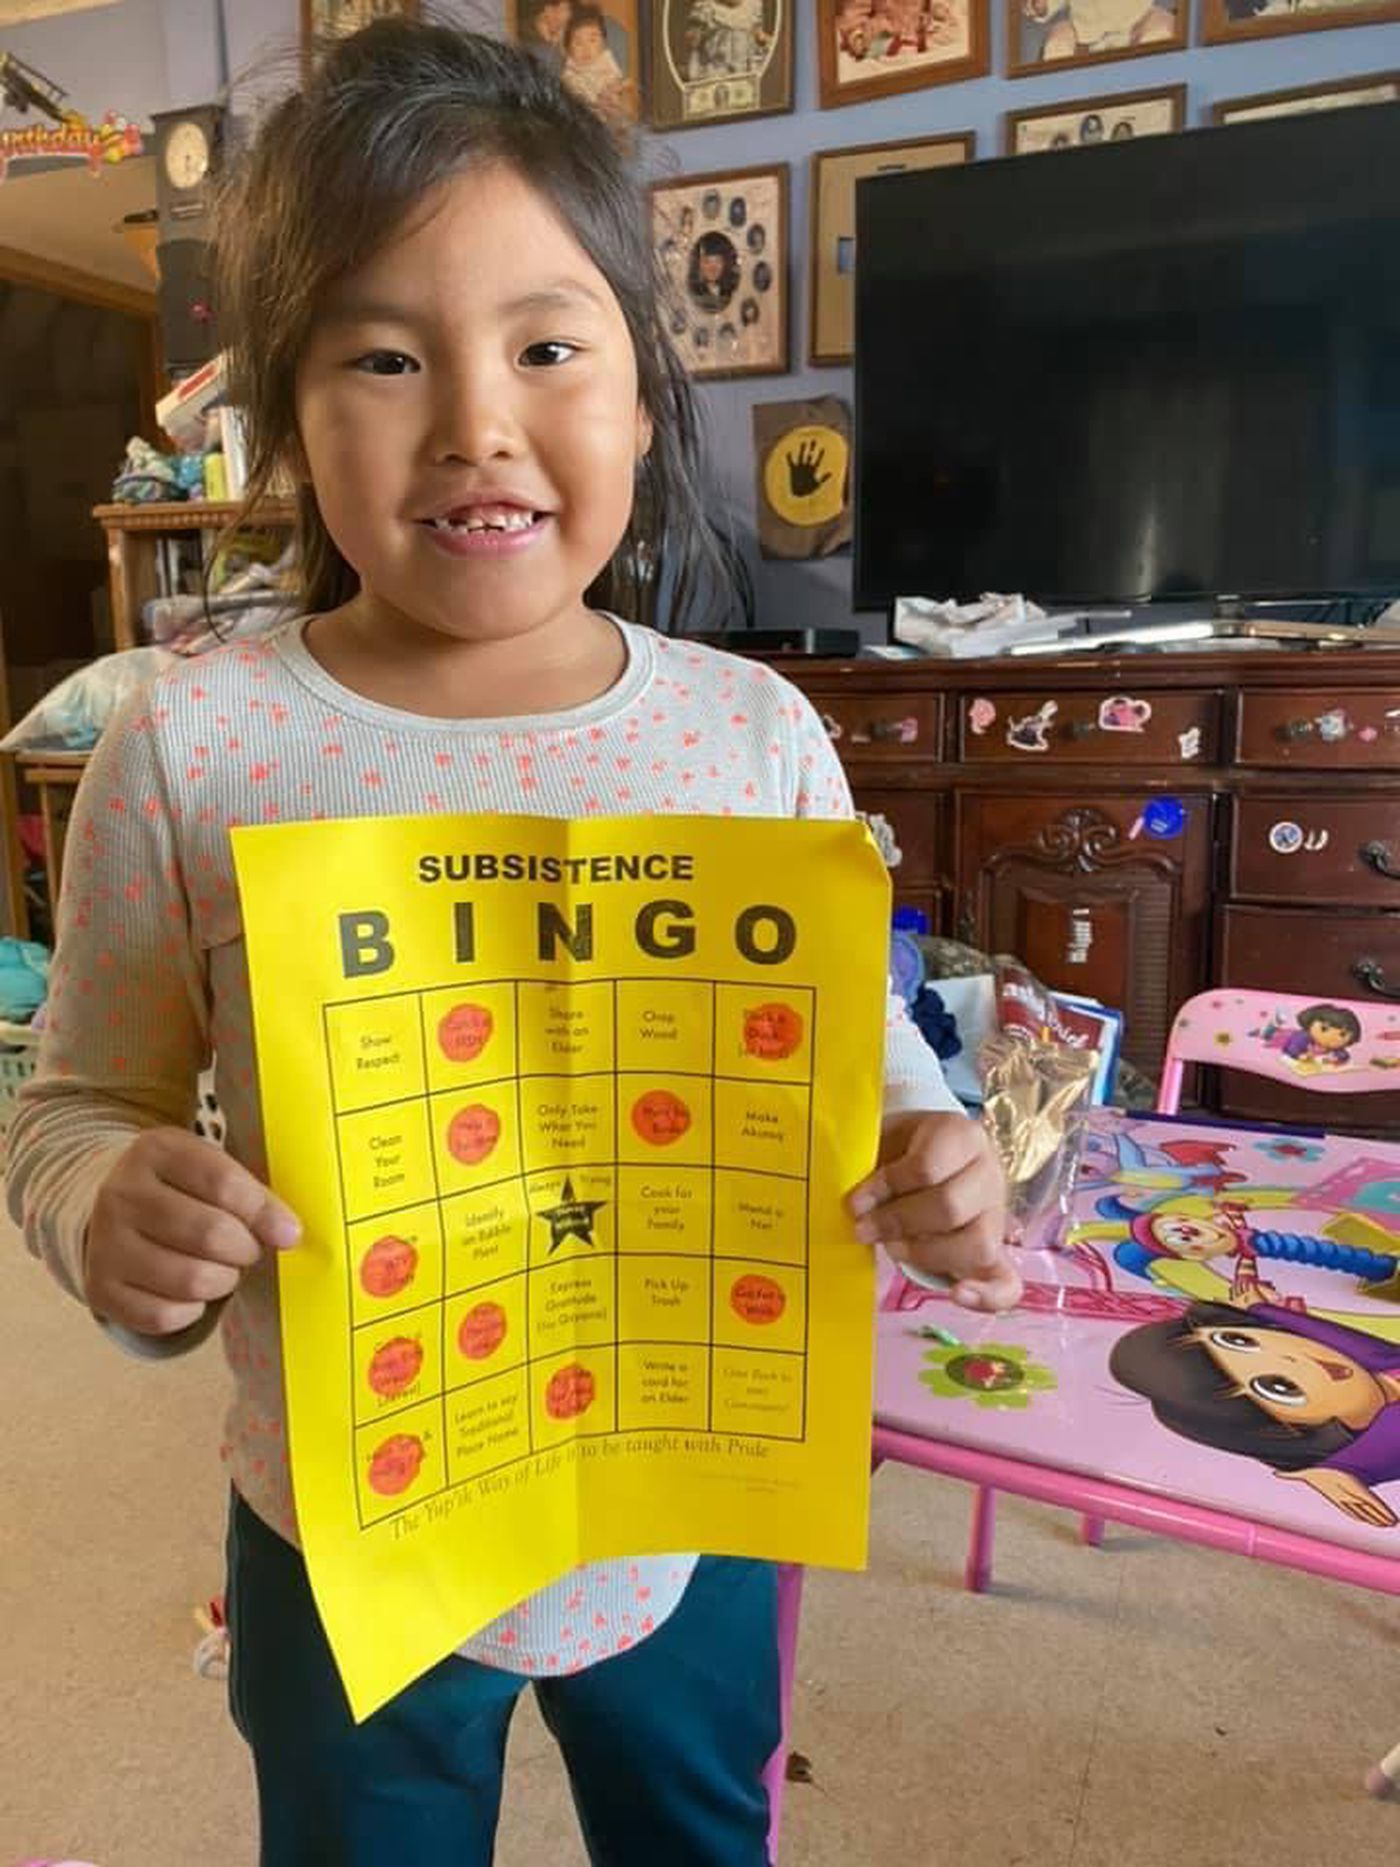 A student displays her completed subsistence bingo card.